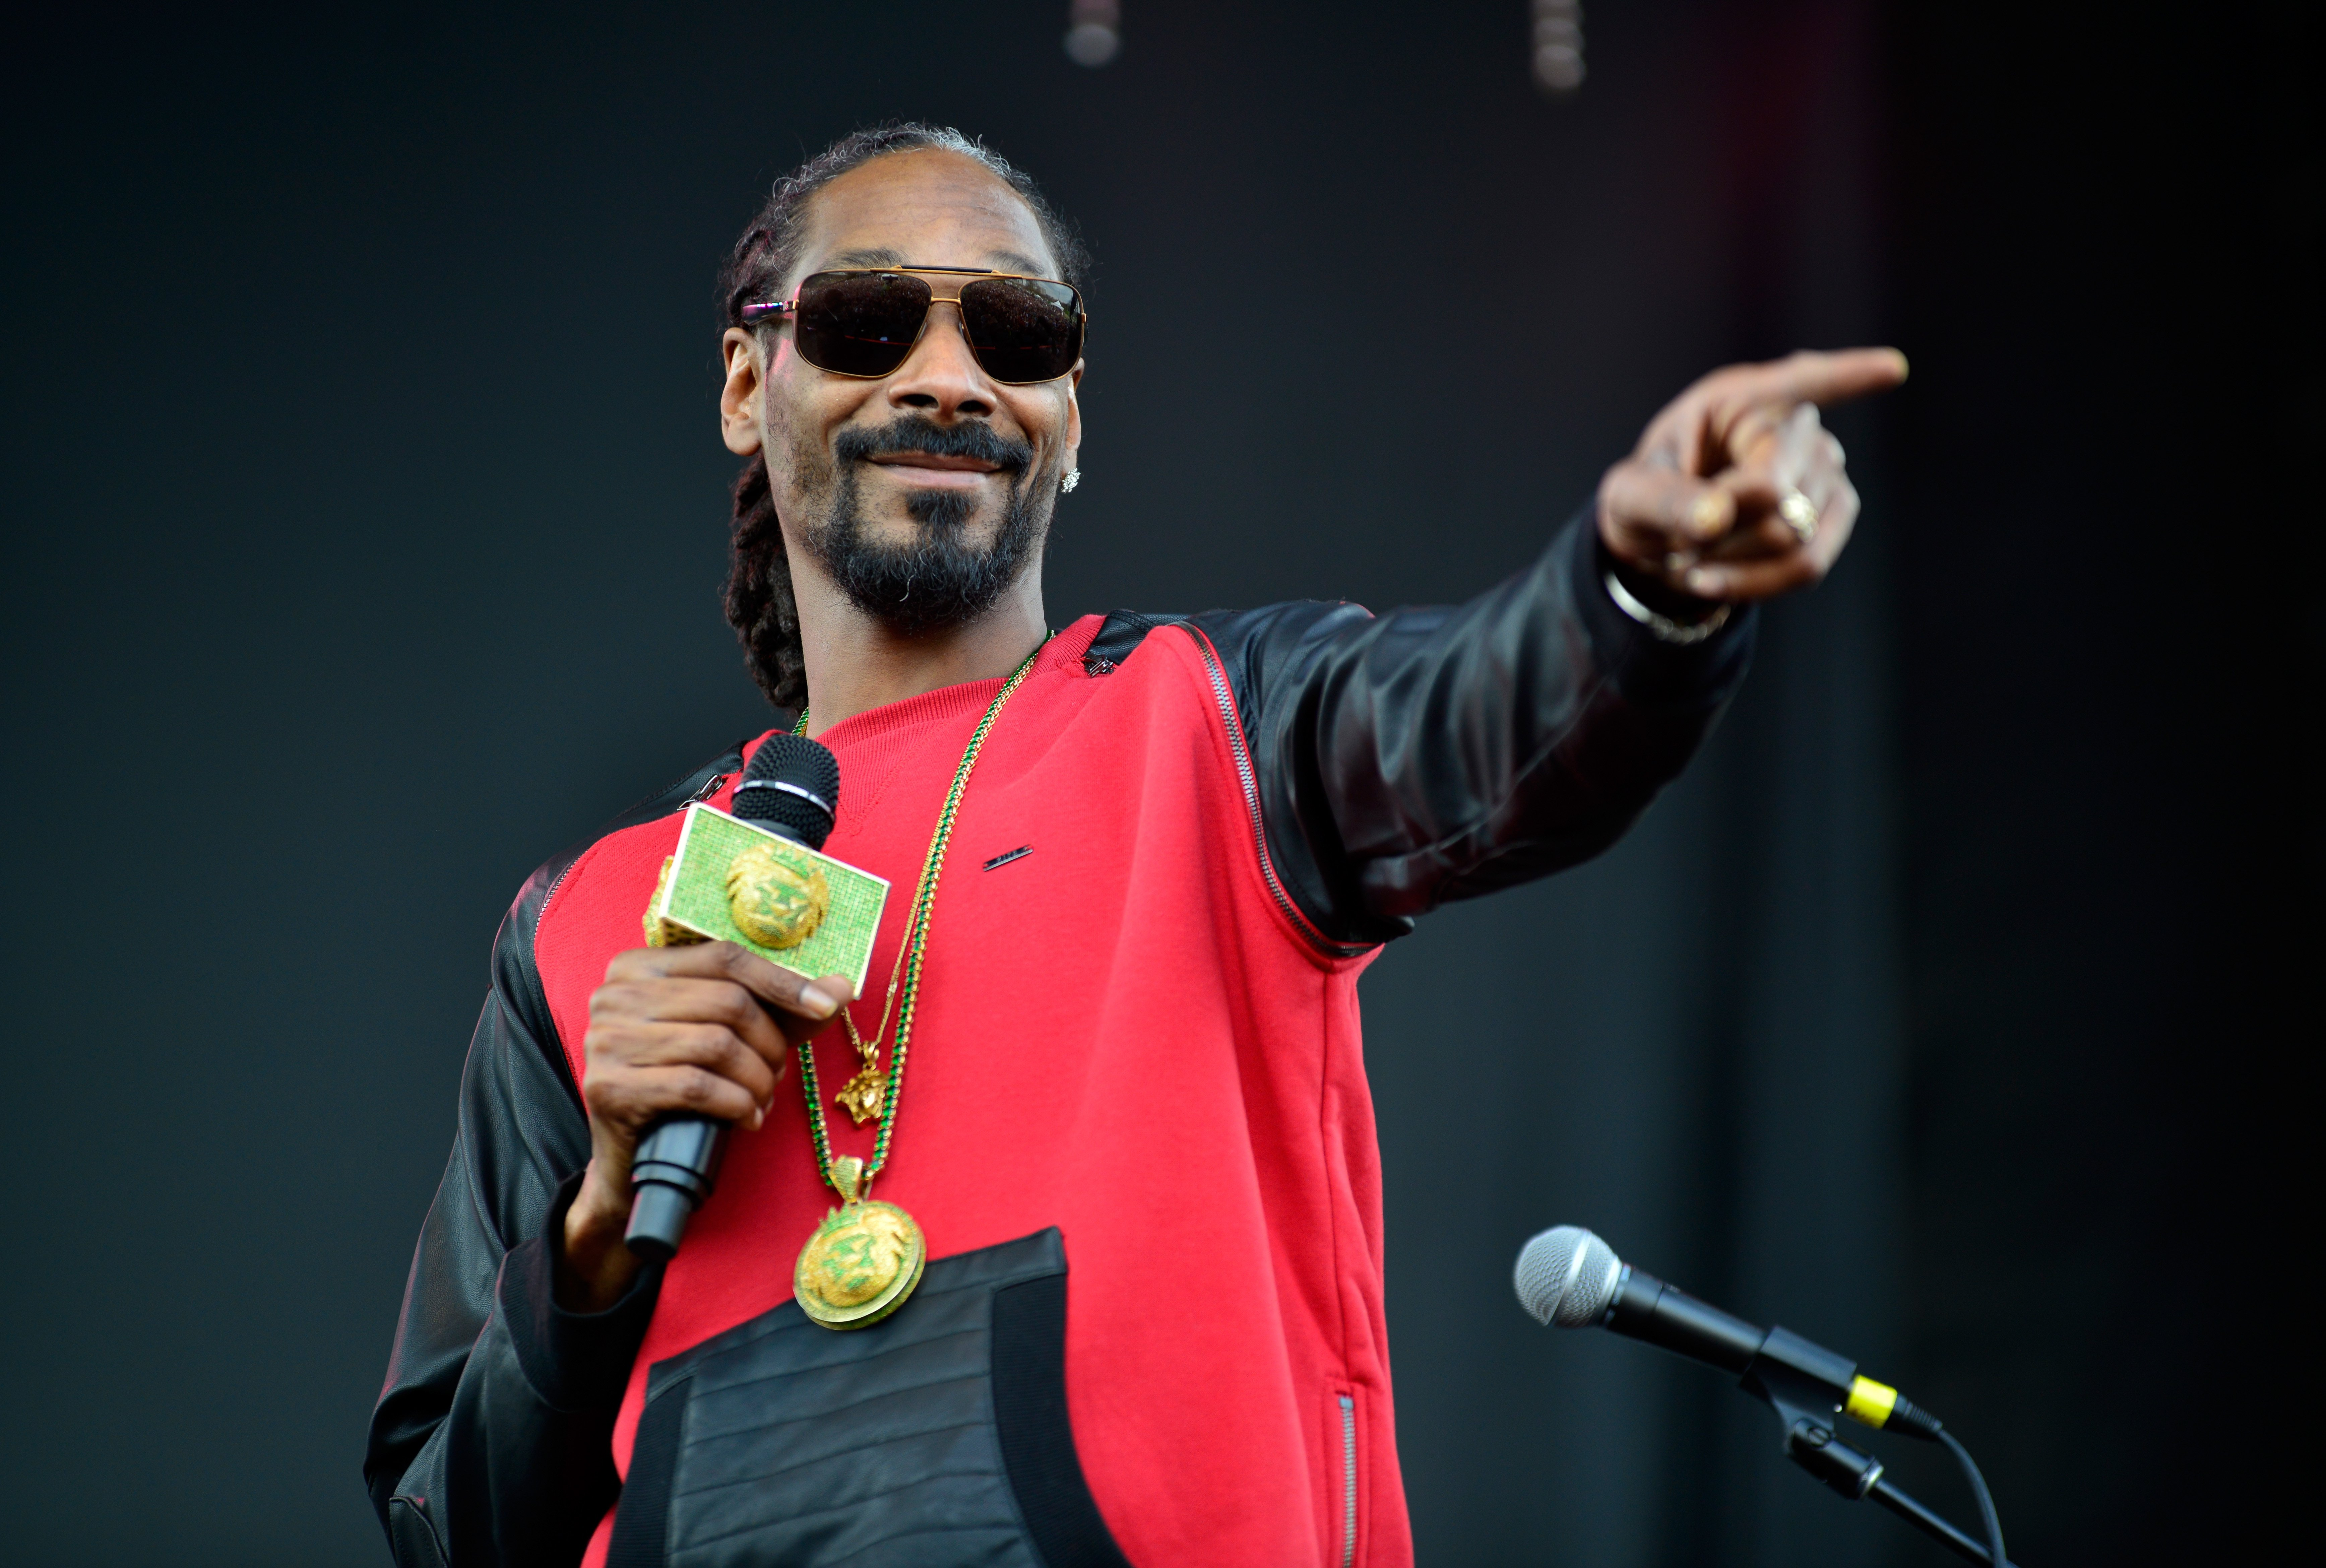 Snoop Dogg onstage during the 2014 SXSW Music, Film + Interactive Festival in Austin, Texas on March 15, 2014 | Photo: Getty Images